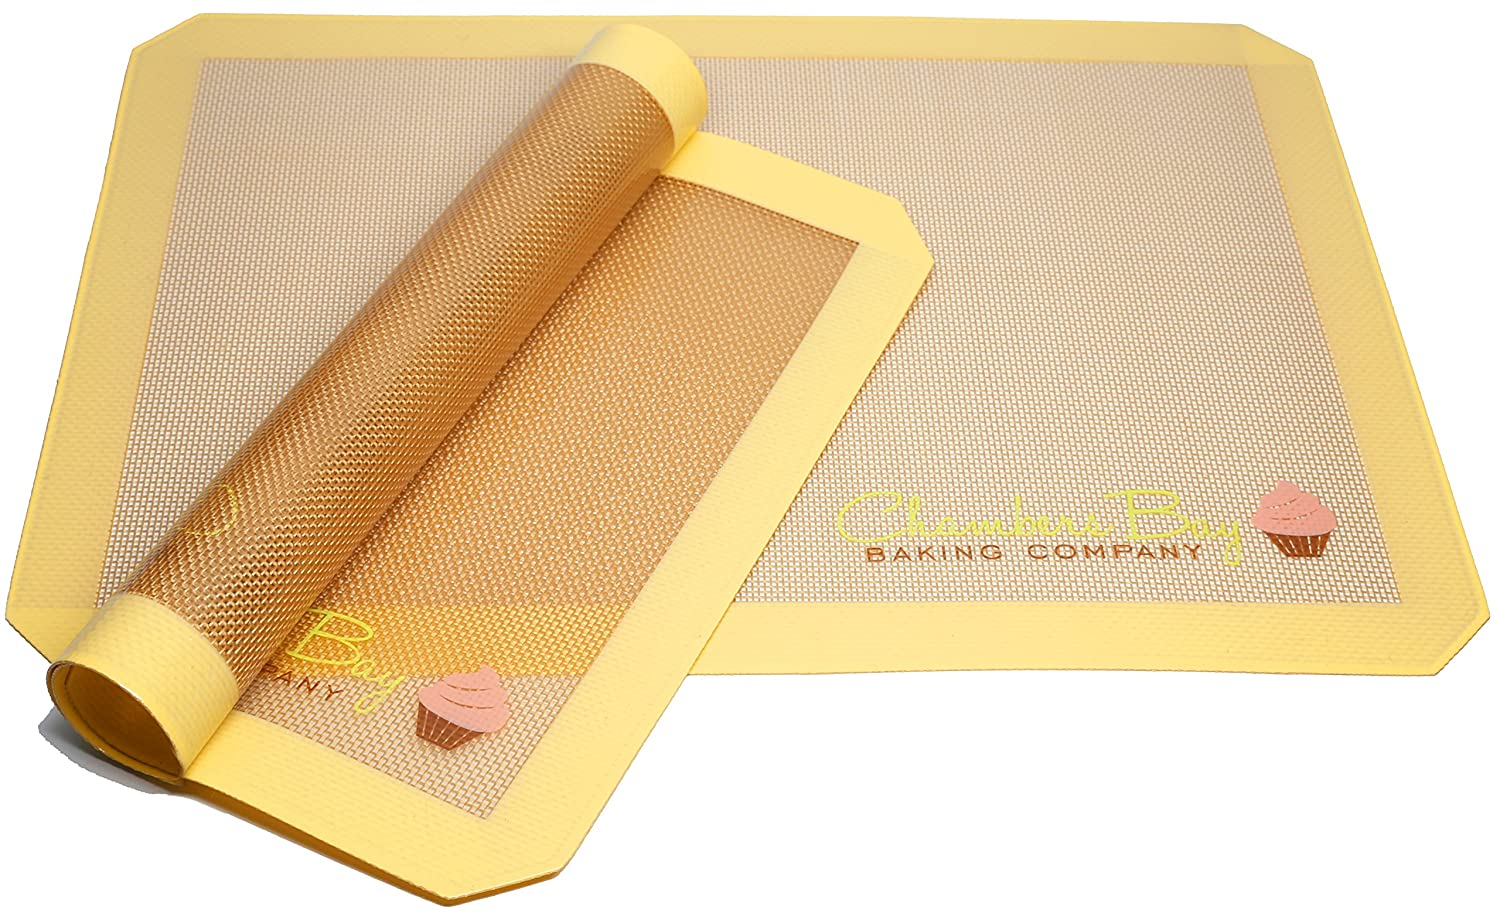 Silicone Baking Mat for Macaron- Two Half Sheet Mat Set 16.5 x 11 5/8 - Non Stick - Cookie Sheet - Baking Liner - Perfect for Oven, Pastry, Bacon, Cookies, Chicken, Pizza, Bread, Pastry Rolling